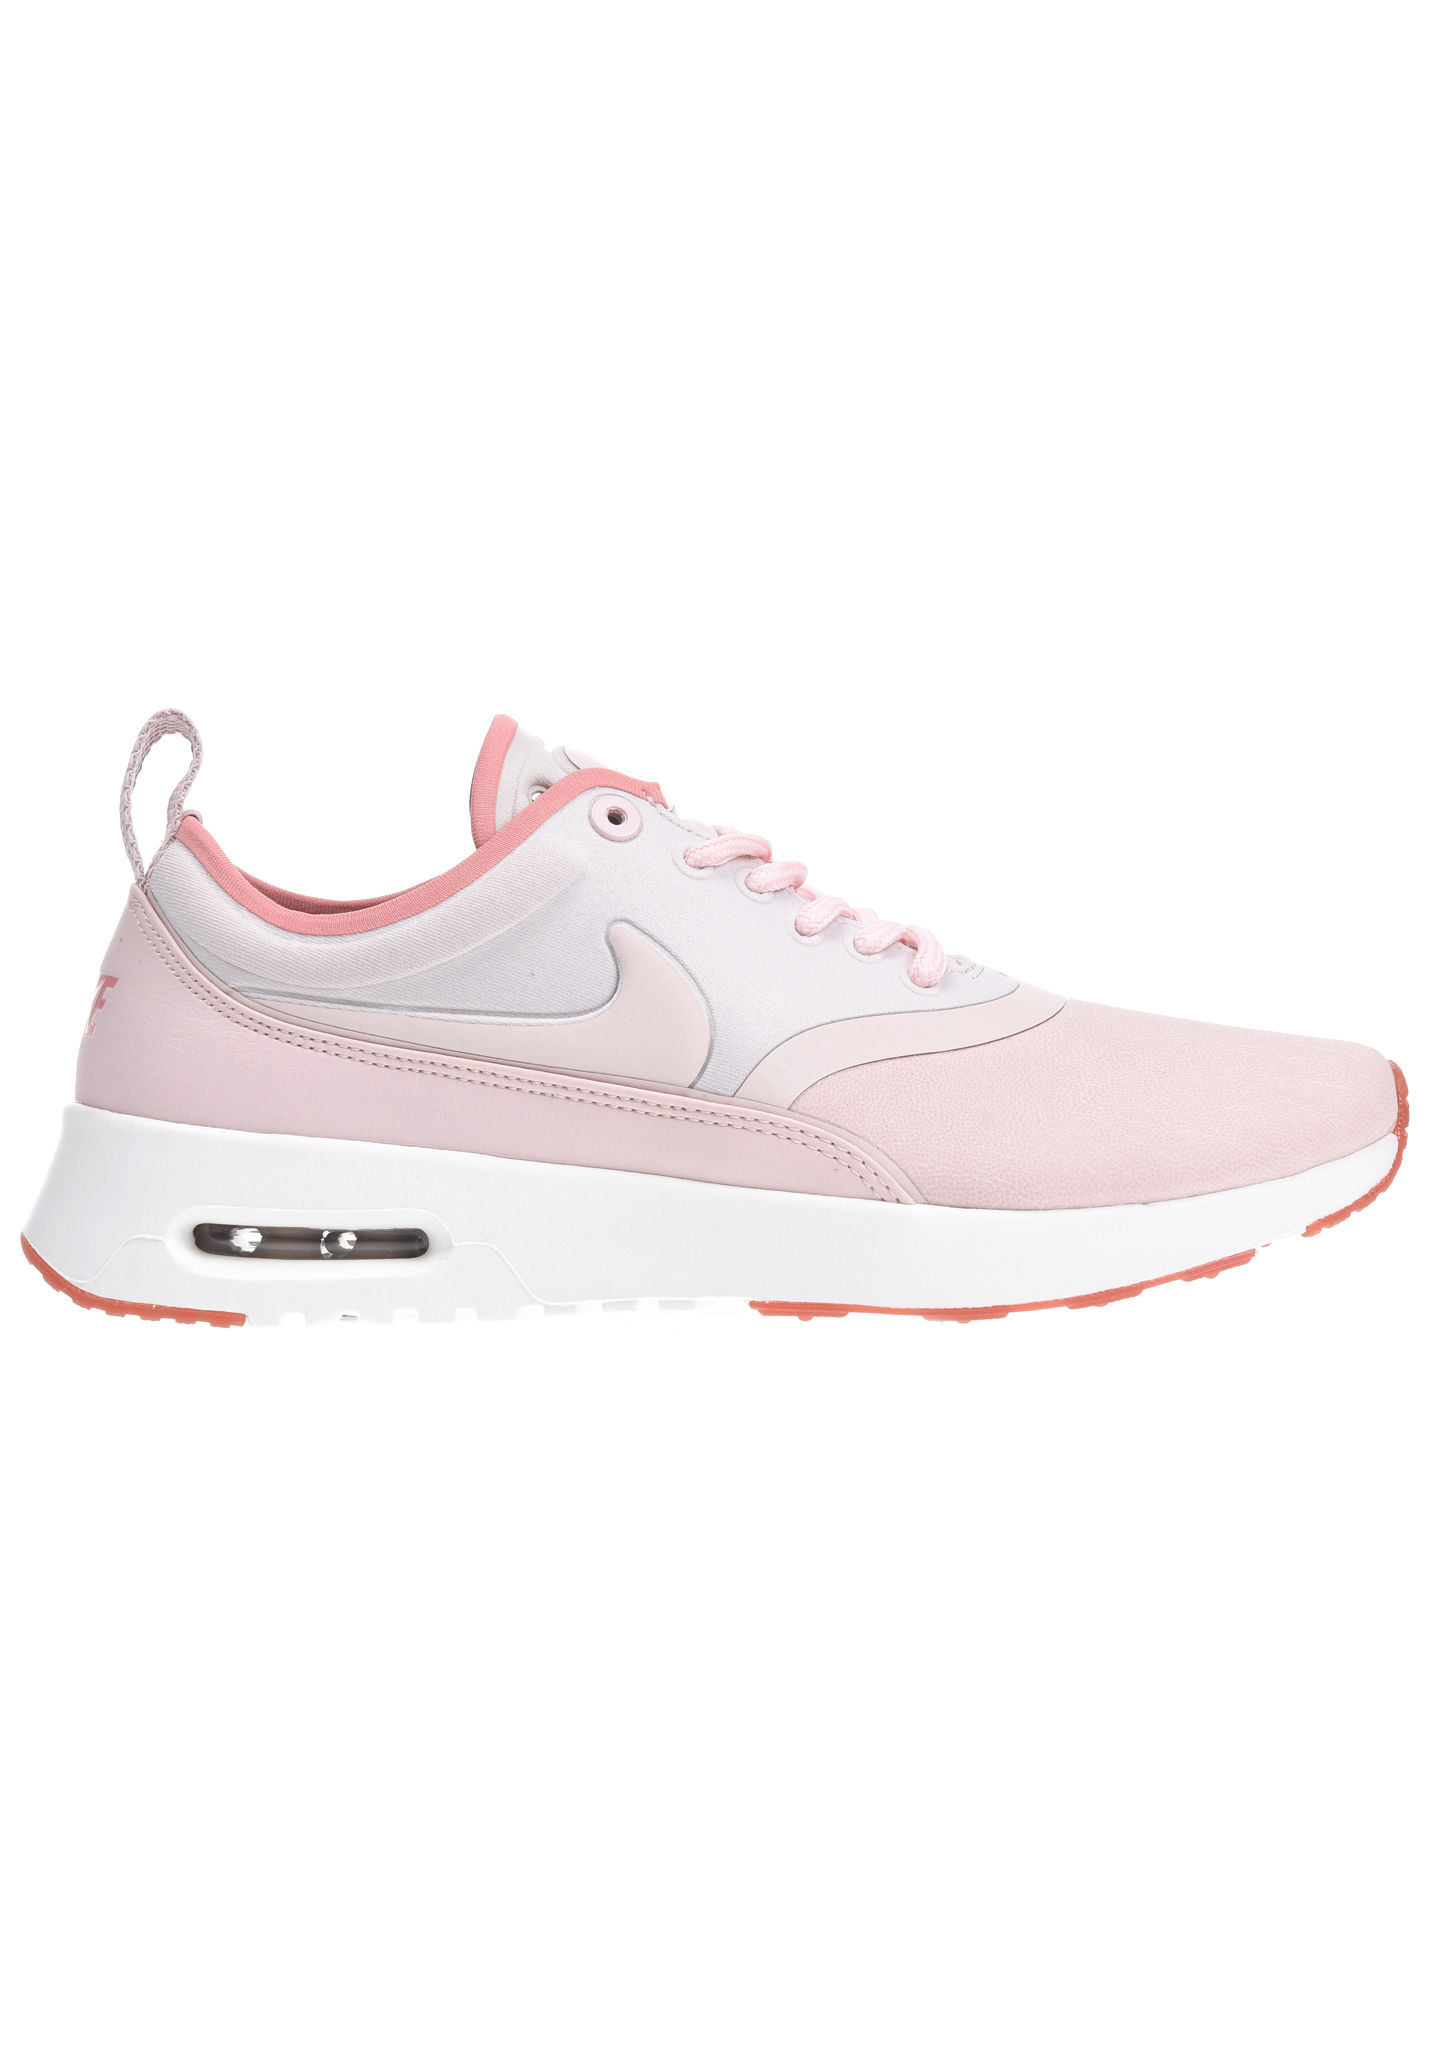 competitive price 67497 5dfa9 NIKE SPORTSWEAR Air Max Thea Ultra Premium - Sneakers for Women - Pink -  Planet Sports